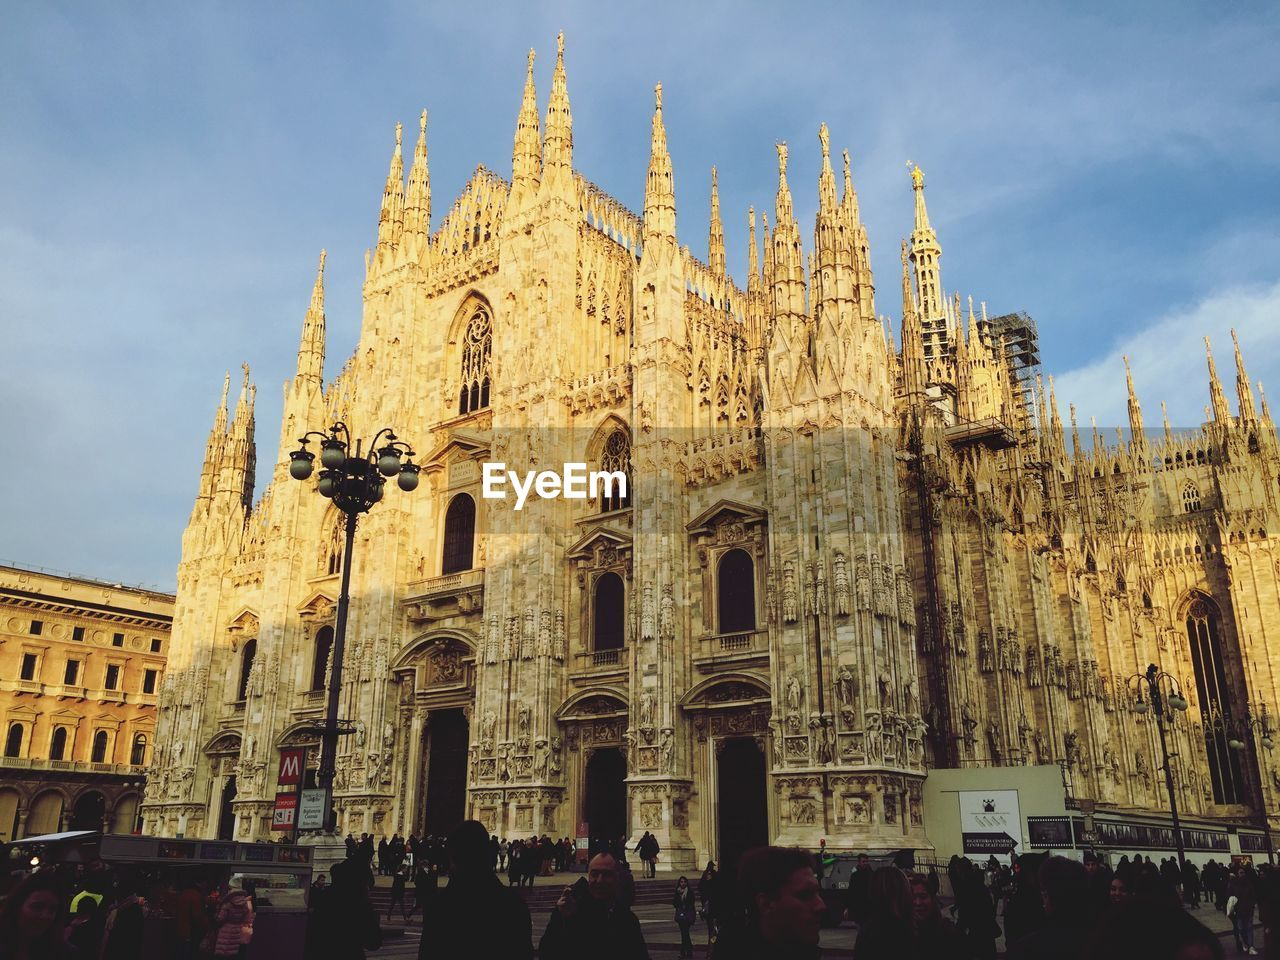 building exterior, architecture, built structure, crowd, group of people, sky, travel destinations, tourism, religion, large group of people, place of worship, travel, belief, building, spirituality, real people, history, gothic style, ornate